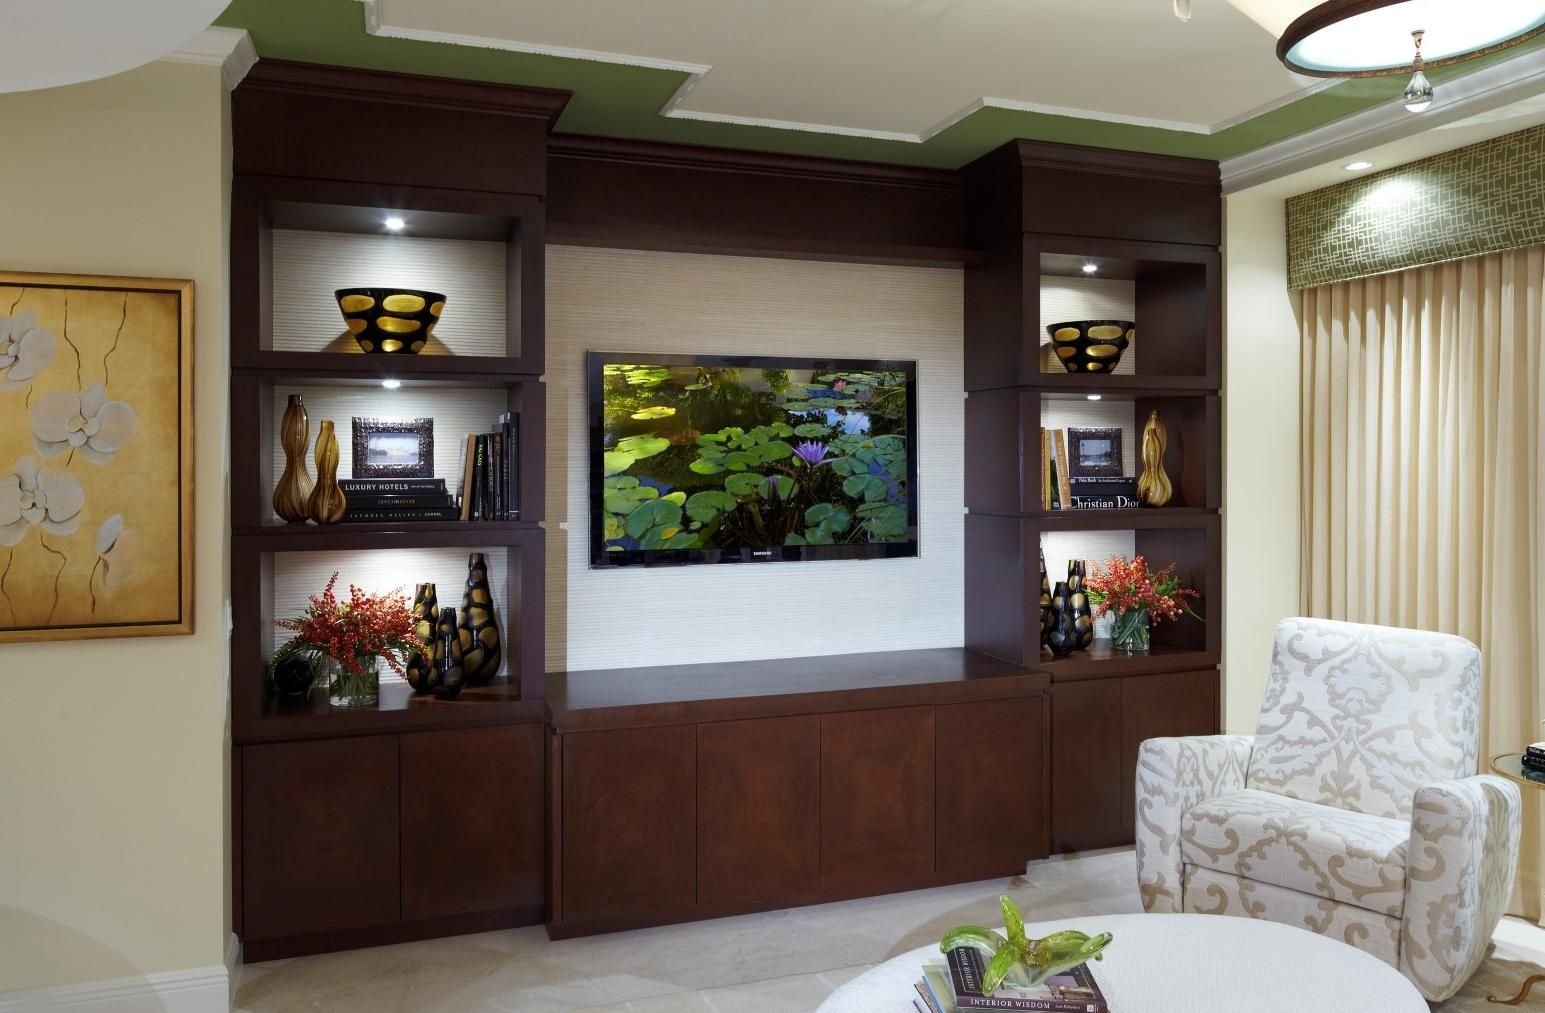 living room entertainment center ideas - google search | ideas for